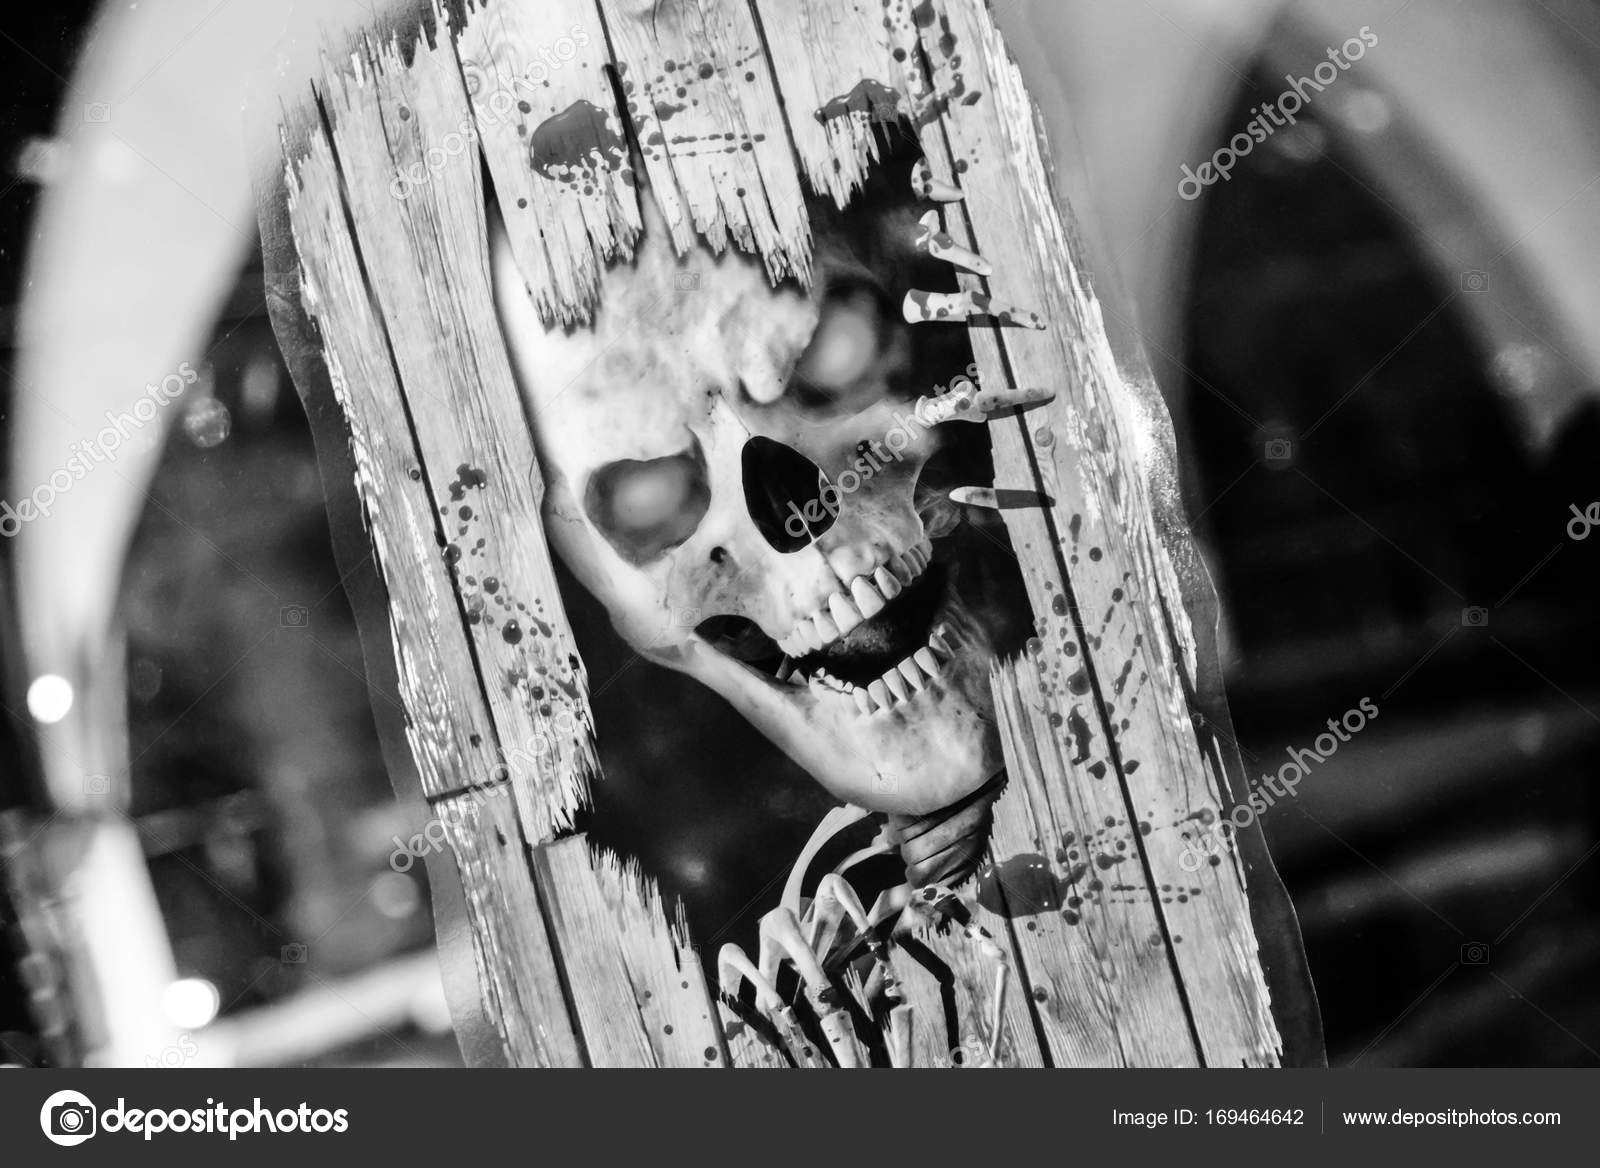 Wallpapers Scary Skulls Horror Scary Skull In Abstract